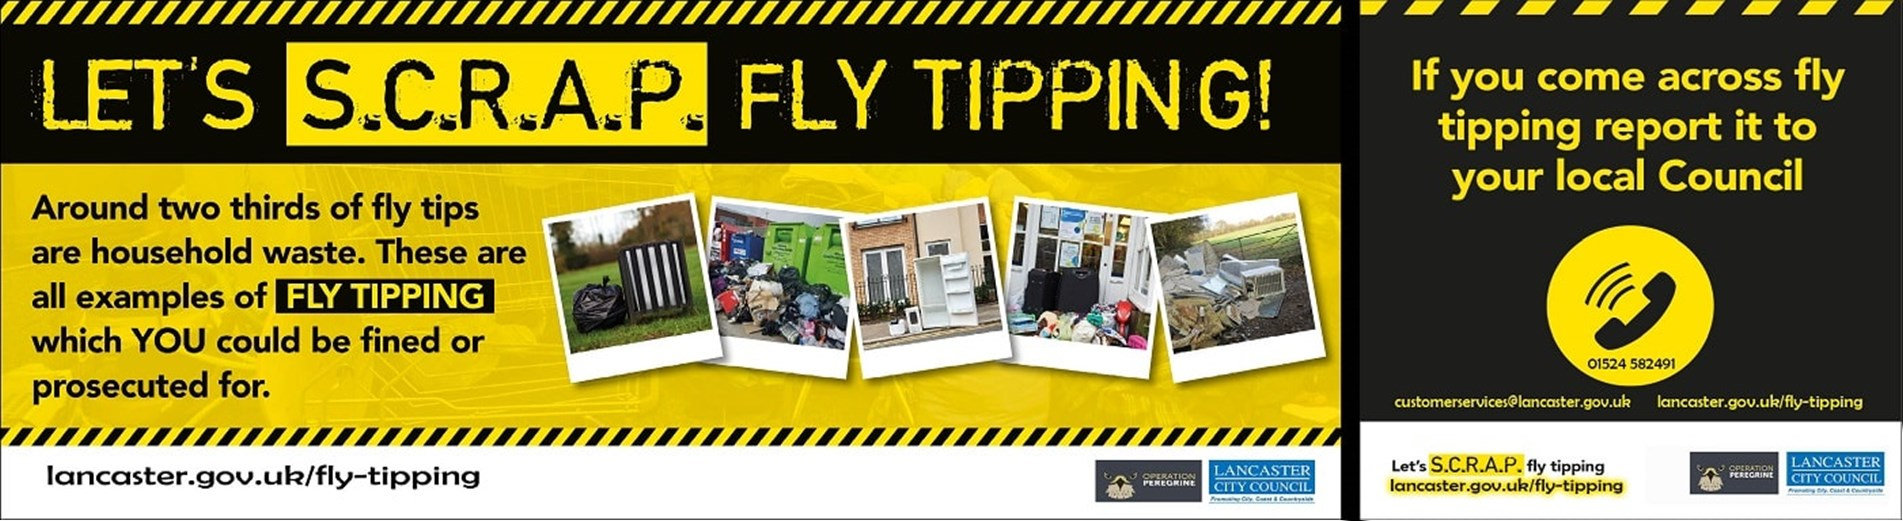 Let's SCRAP fly-tipping banner